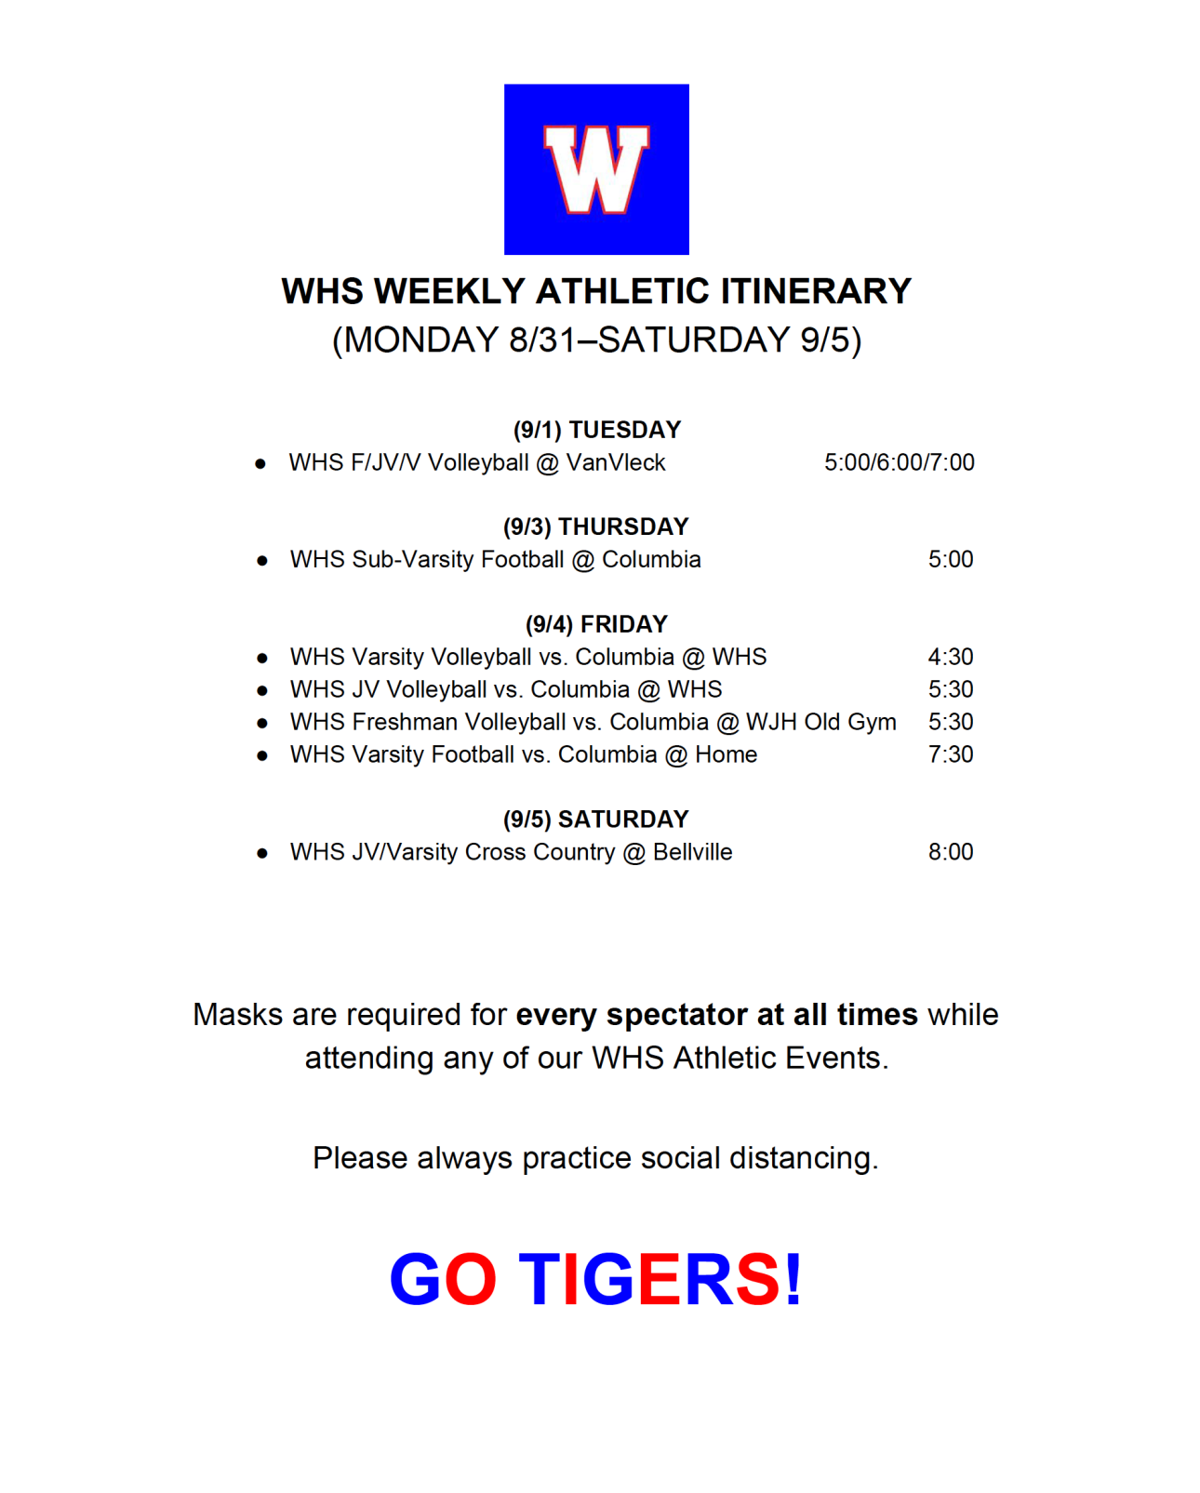 WHARTON ATHLETICS SCHEDULE (AUG. 31-SEPT. 5)